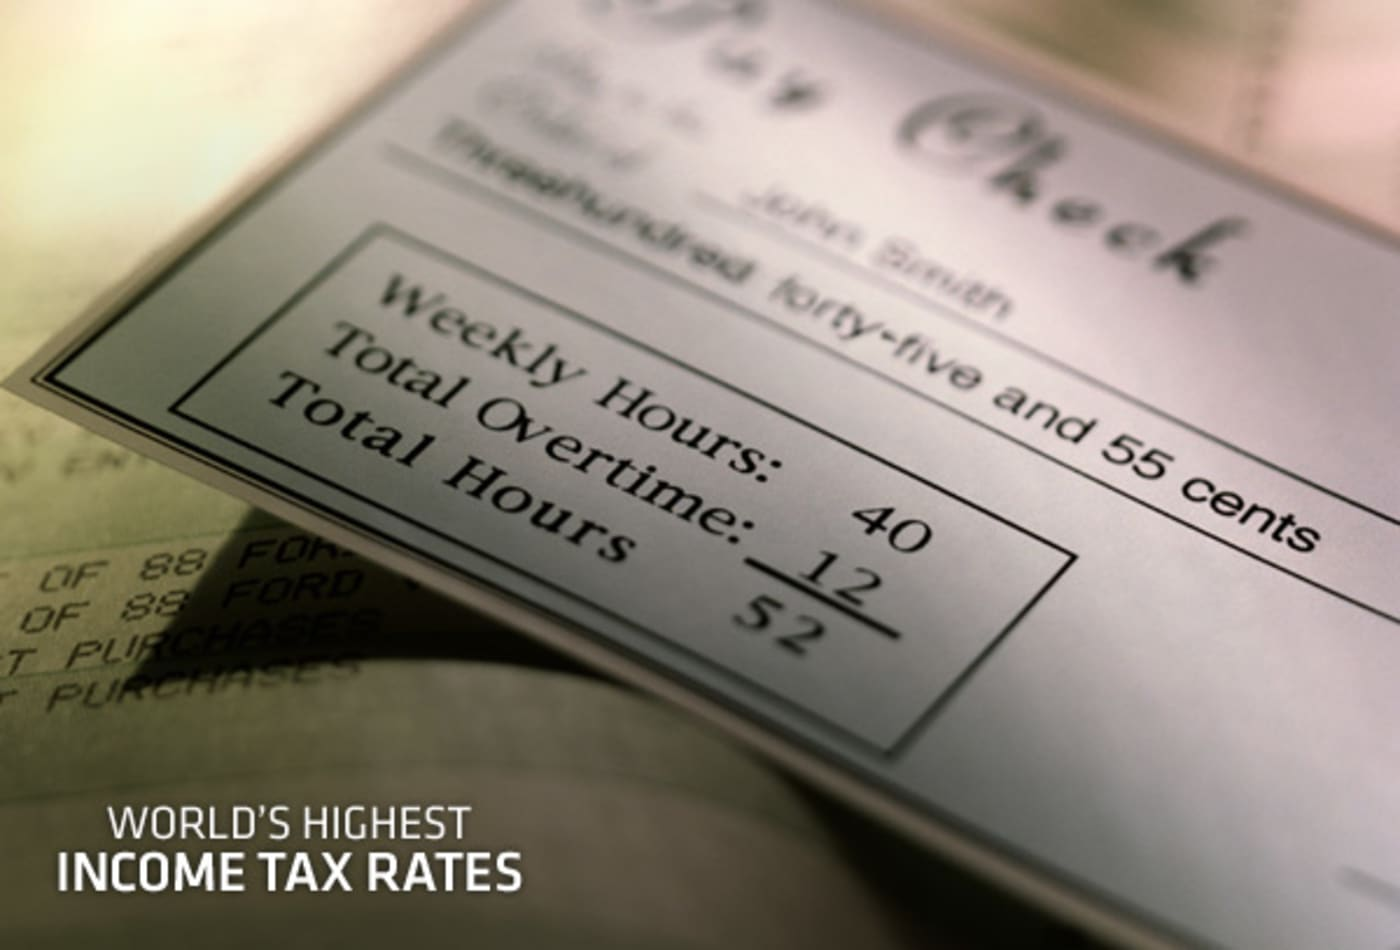 worlds-highest-income-tax-rates-cover.jpg